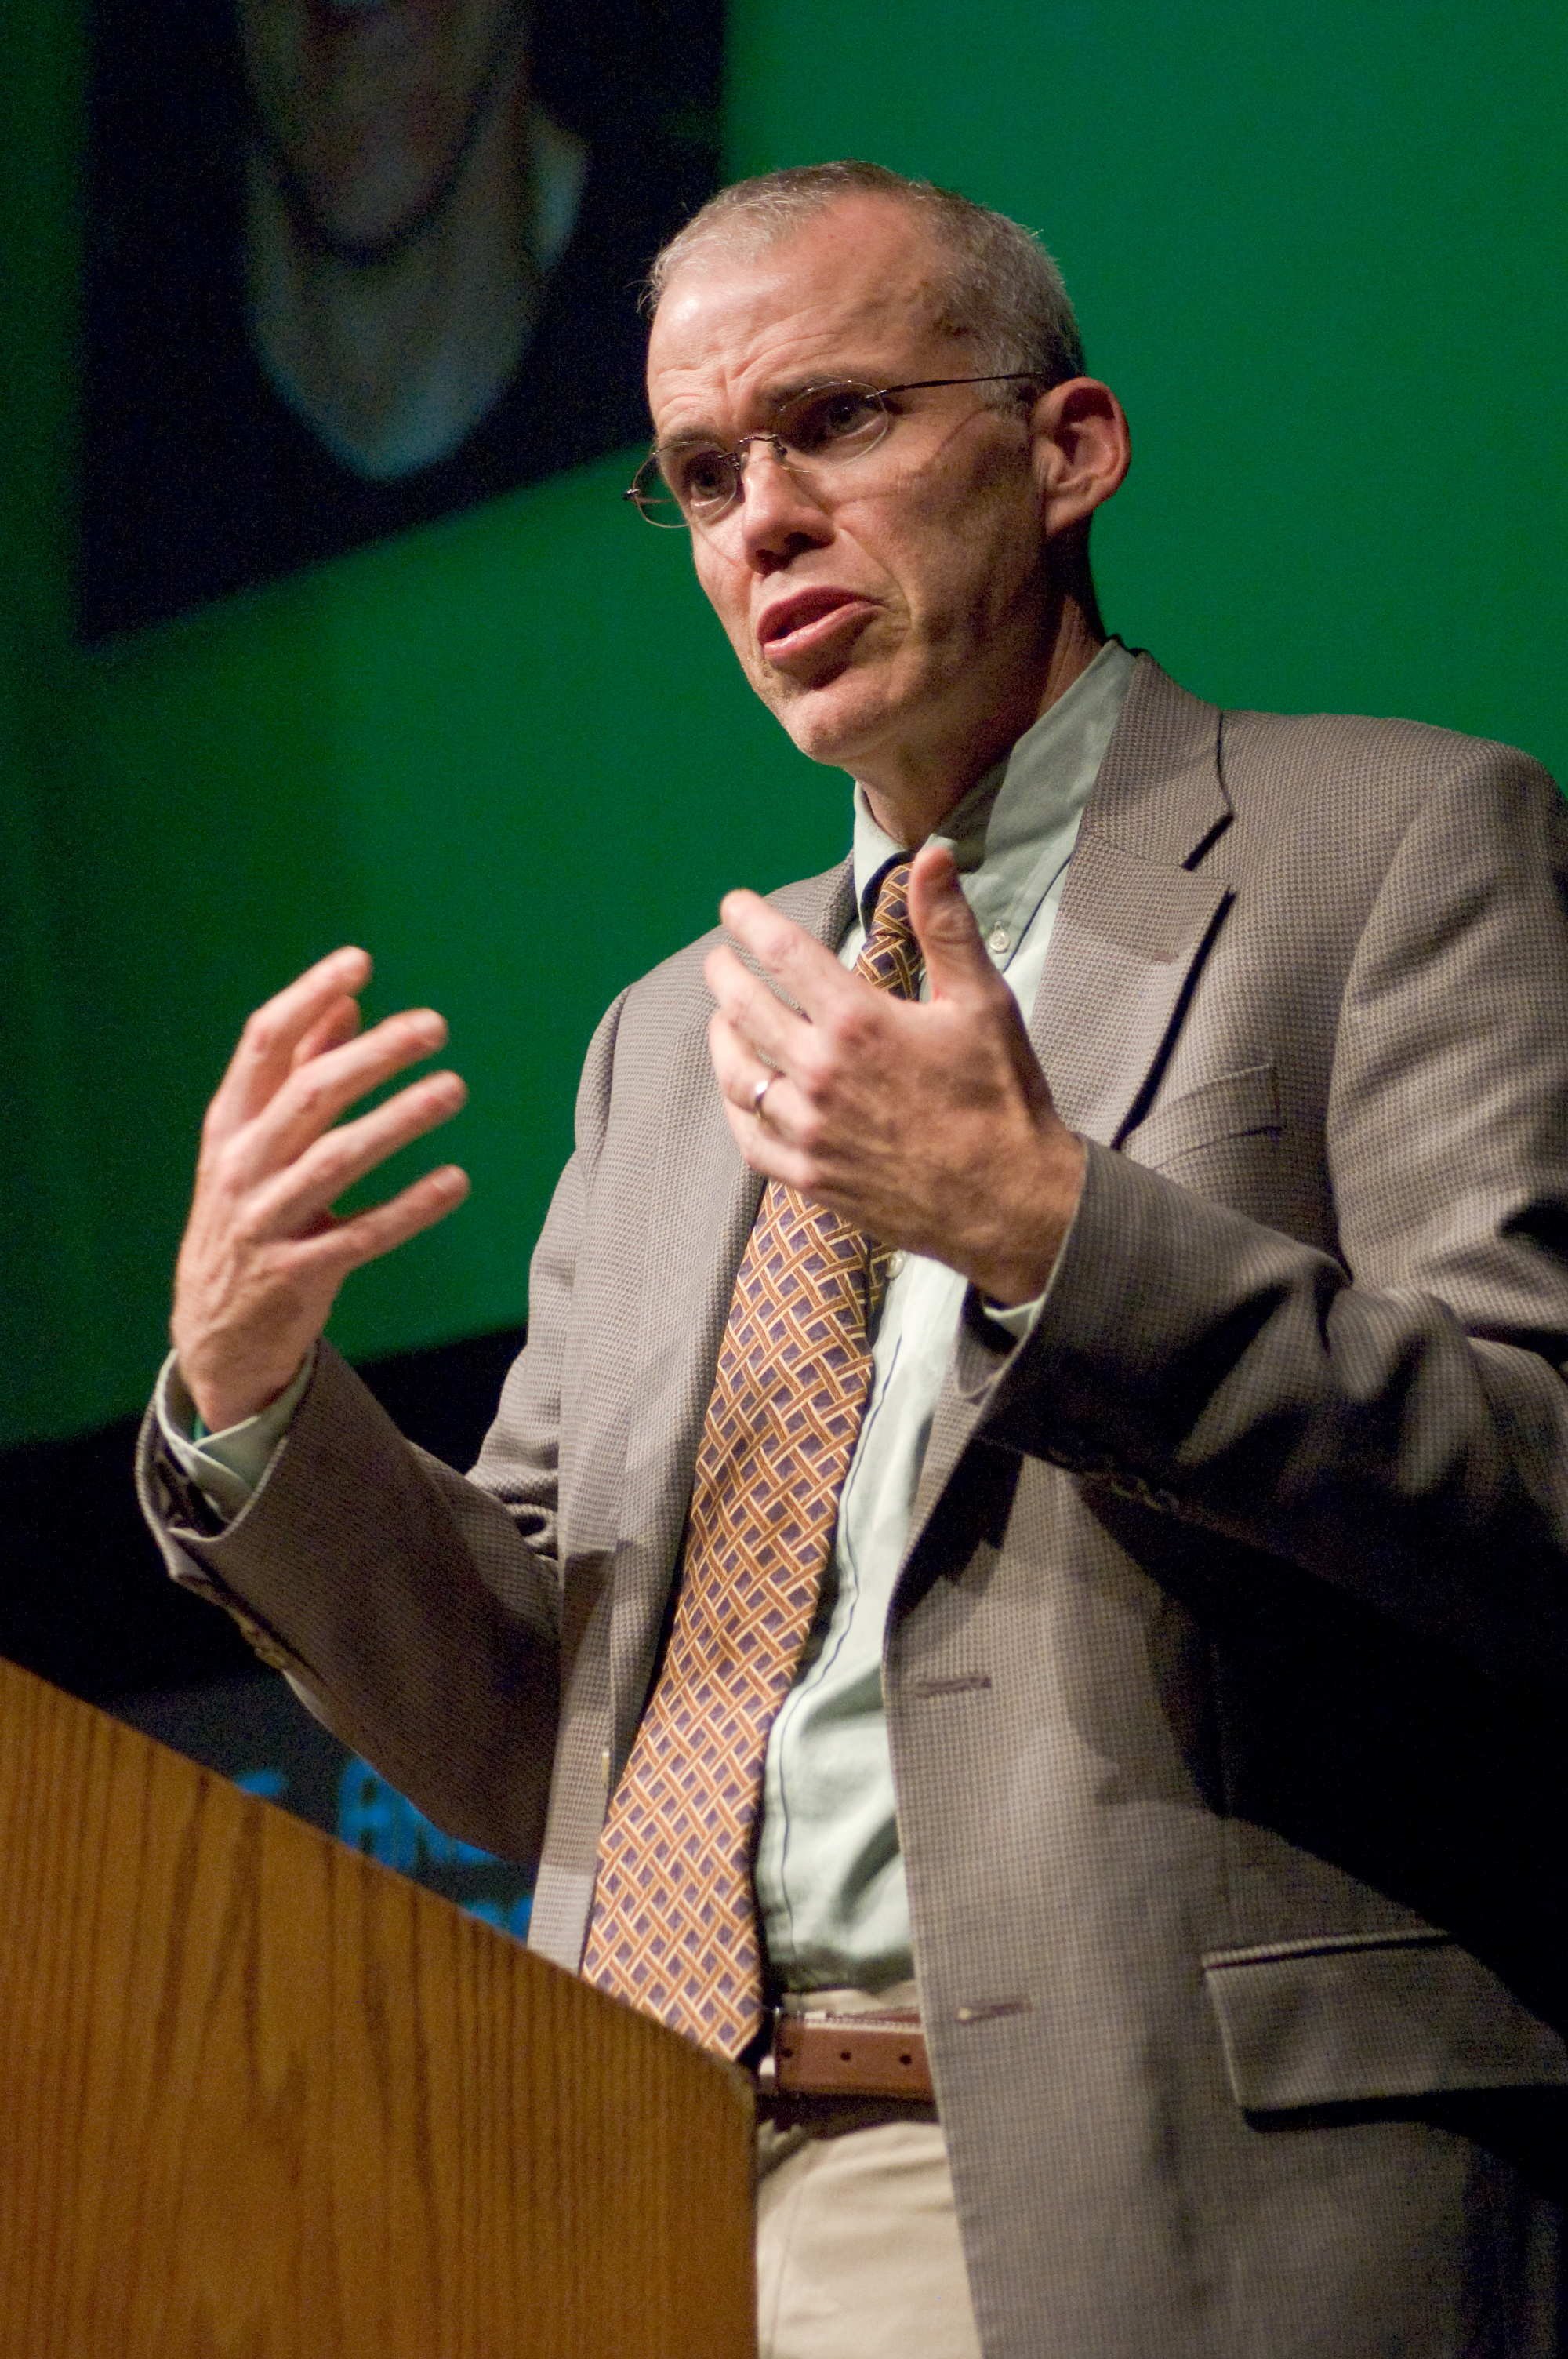 bill mckibben Bill mckibben news and opinion after reviewing the horrors of global warming, mckibben reports how the us and other nations could deploy renewable energy rapidly enough to reduce fossil fuel emissions 80% by 2030.